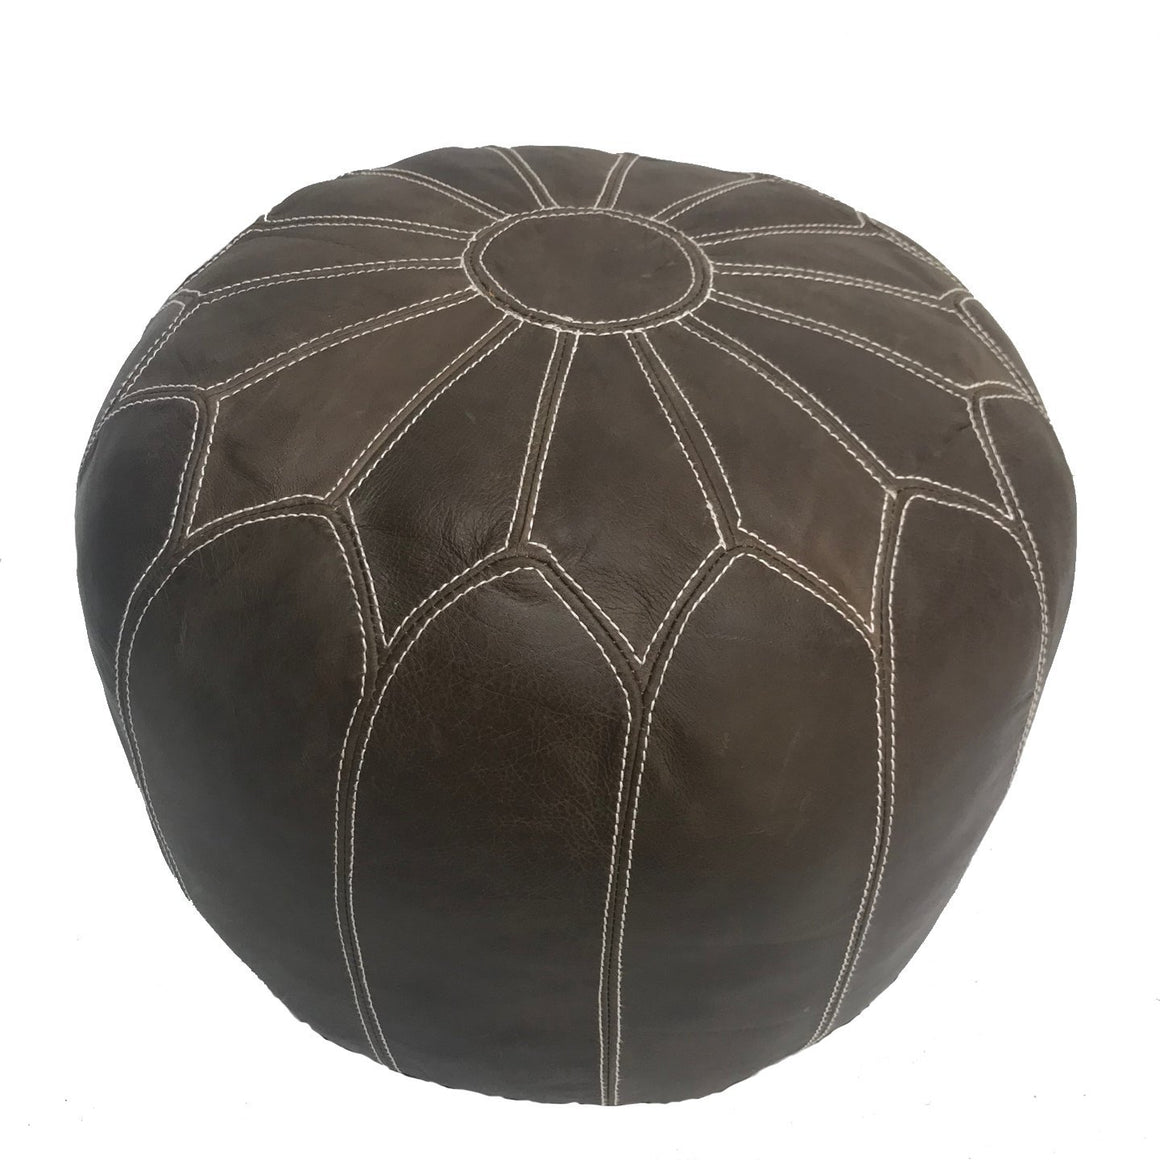 MOROCCAN LEATHER OTTOMAN BROWN Philbee Interiors